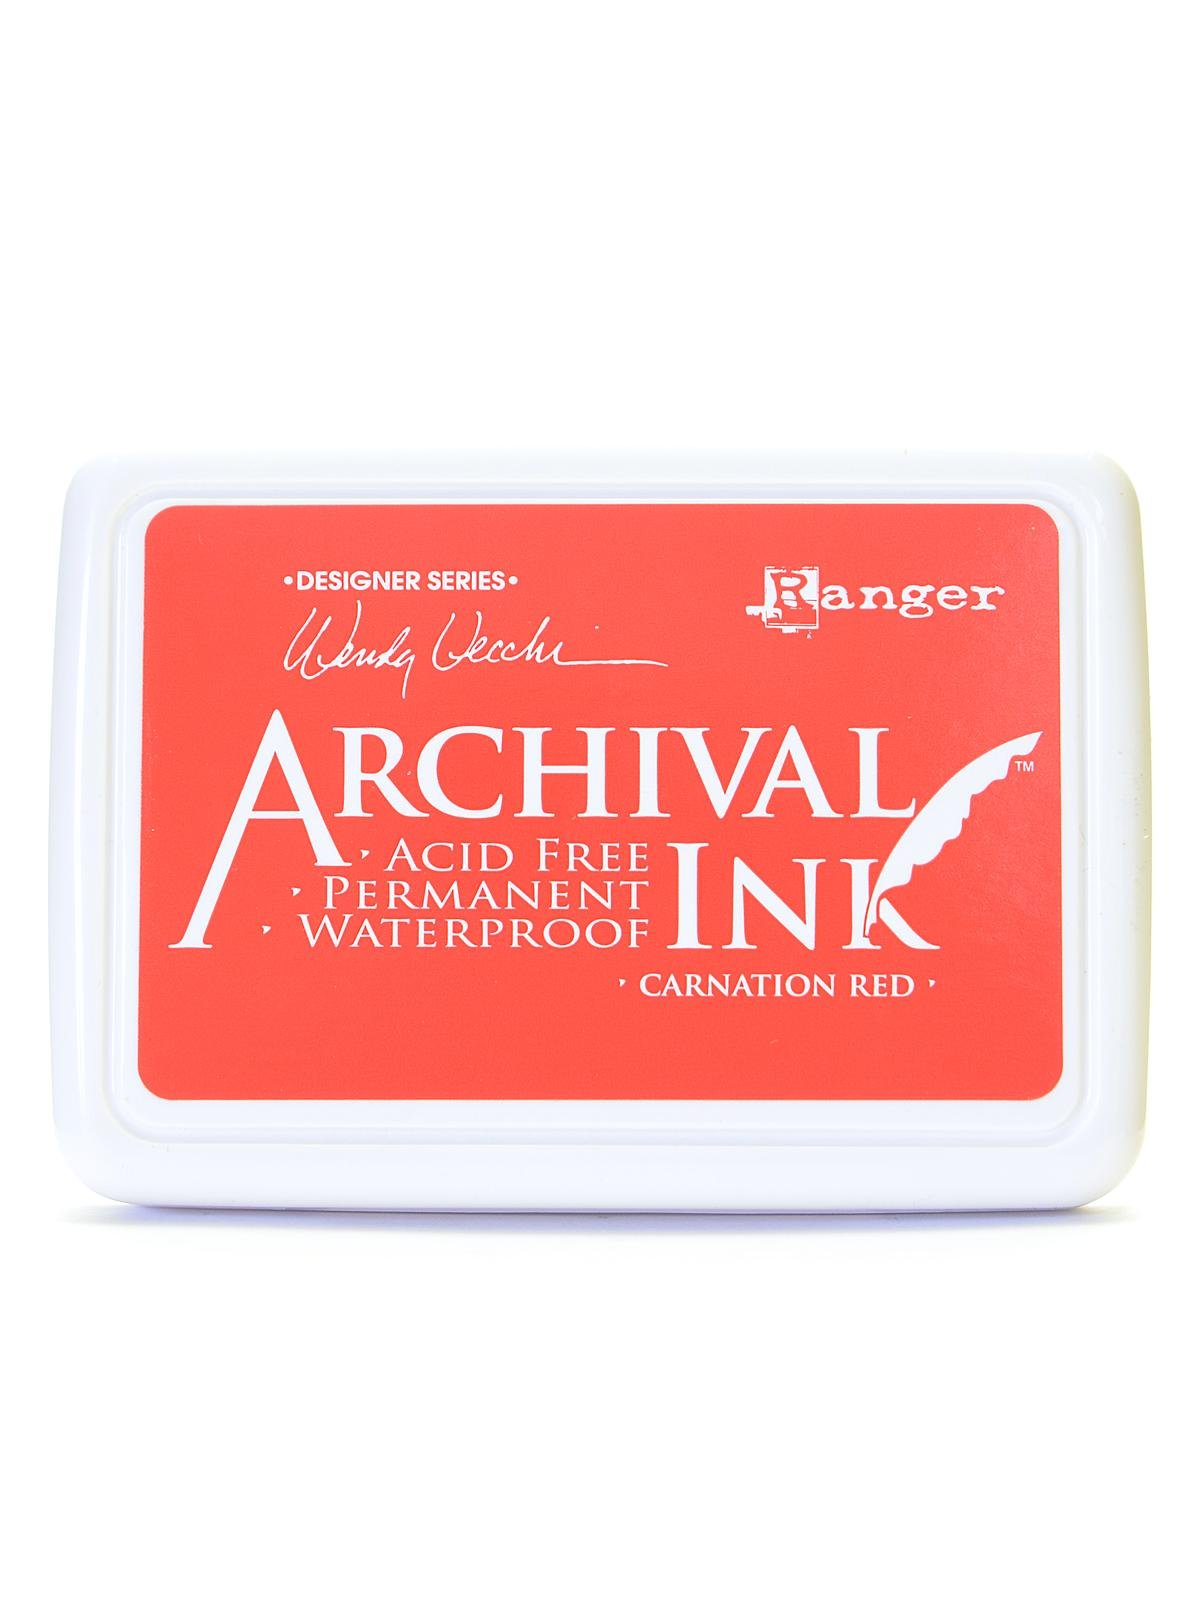 Ranger Archival Ink Wendy Vecchi Designer Series carnation red 2 1/2 in. x 3 3/4 in. pad [PACK OF 3 ]